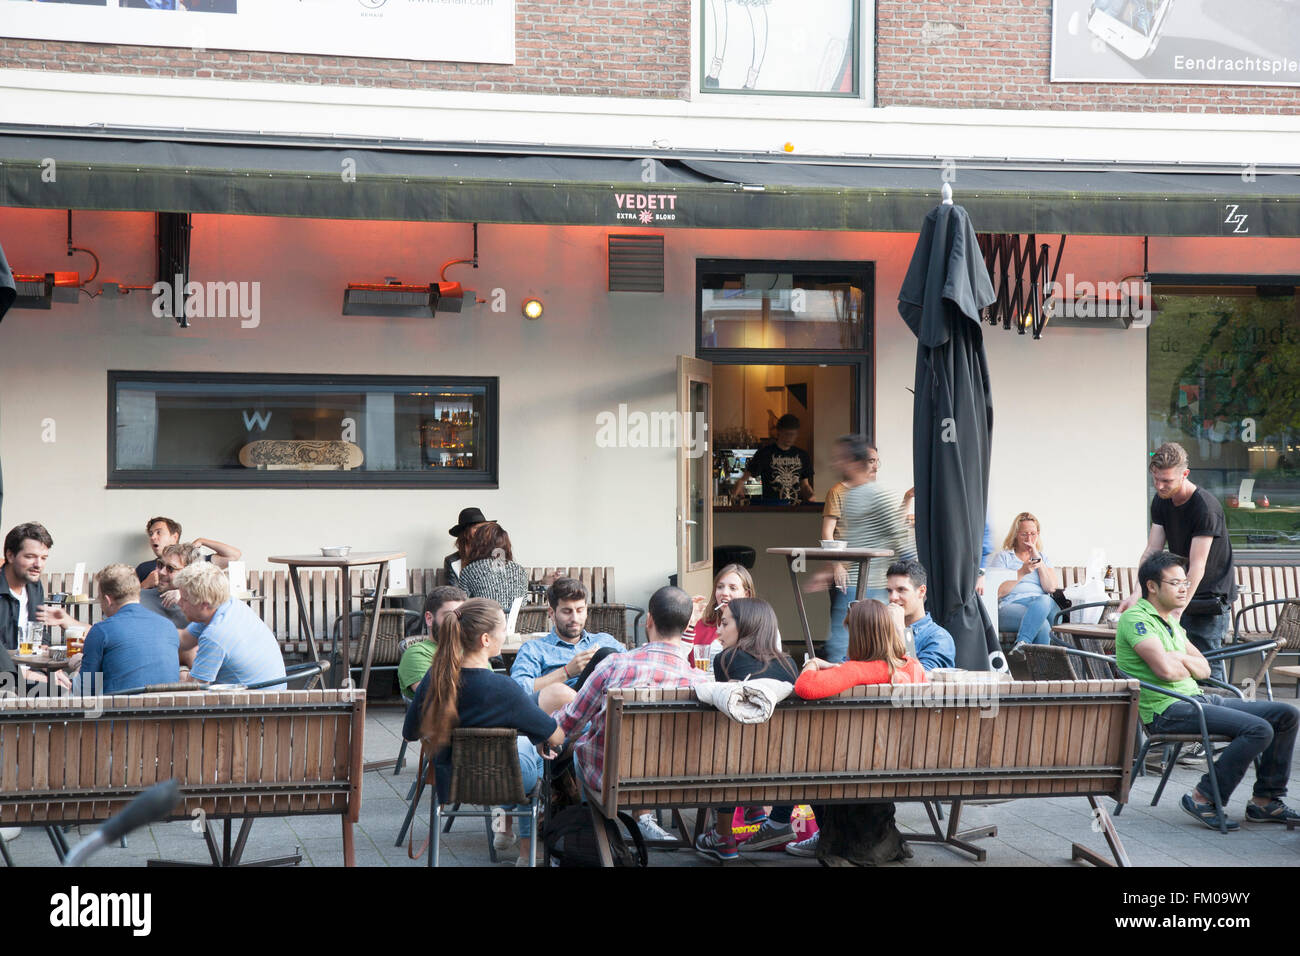 ZZ Cafe and Bar, Witte de Withstraat Street, Rotterdam, Europe - Stock Image